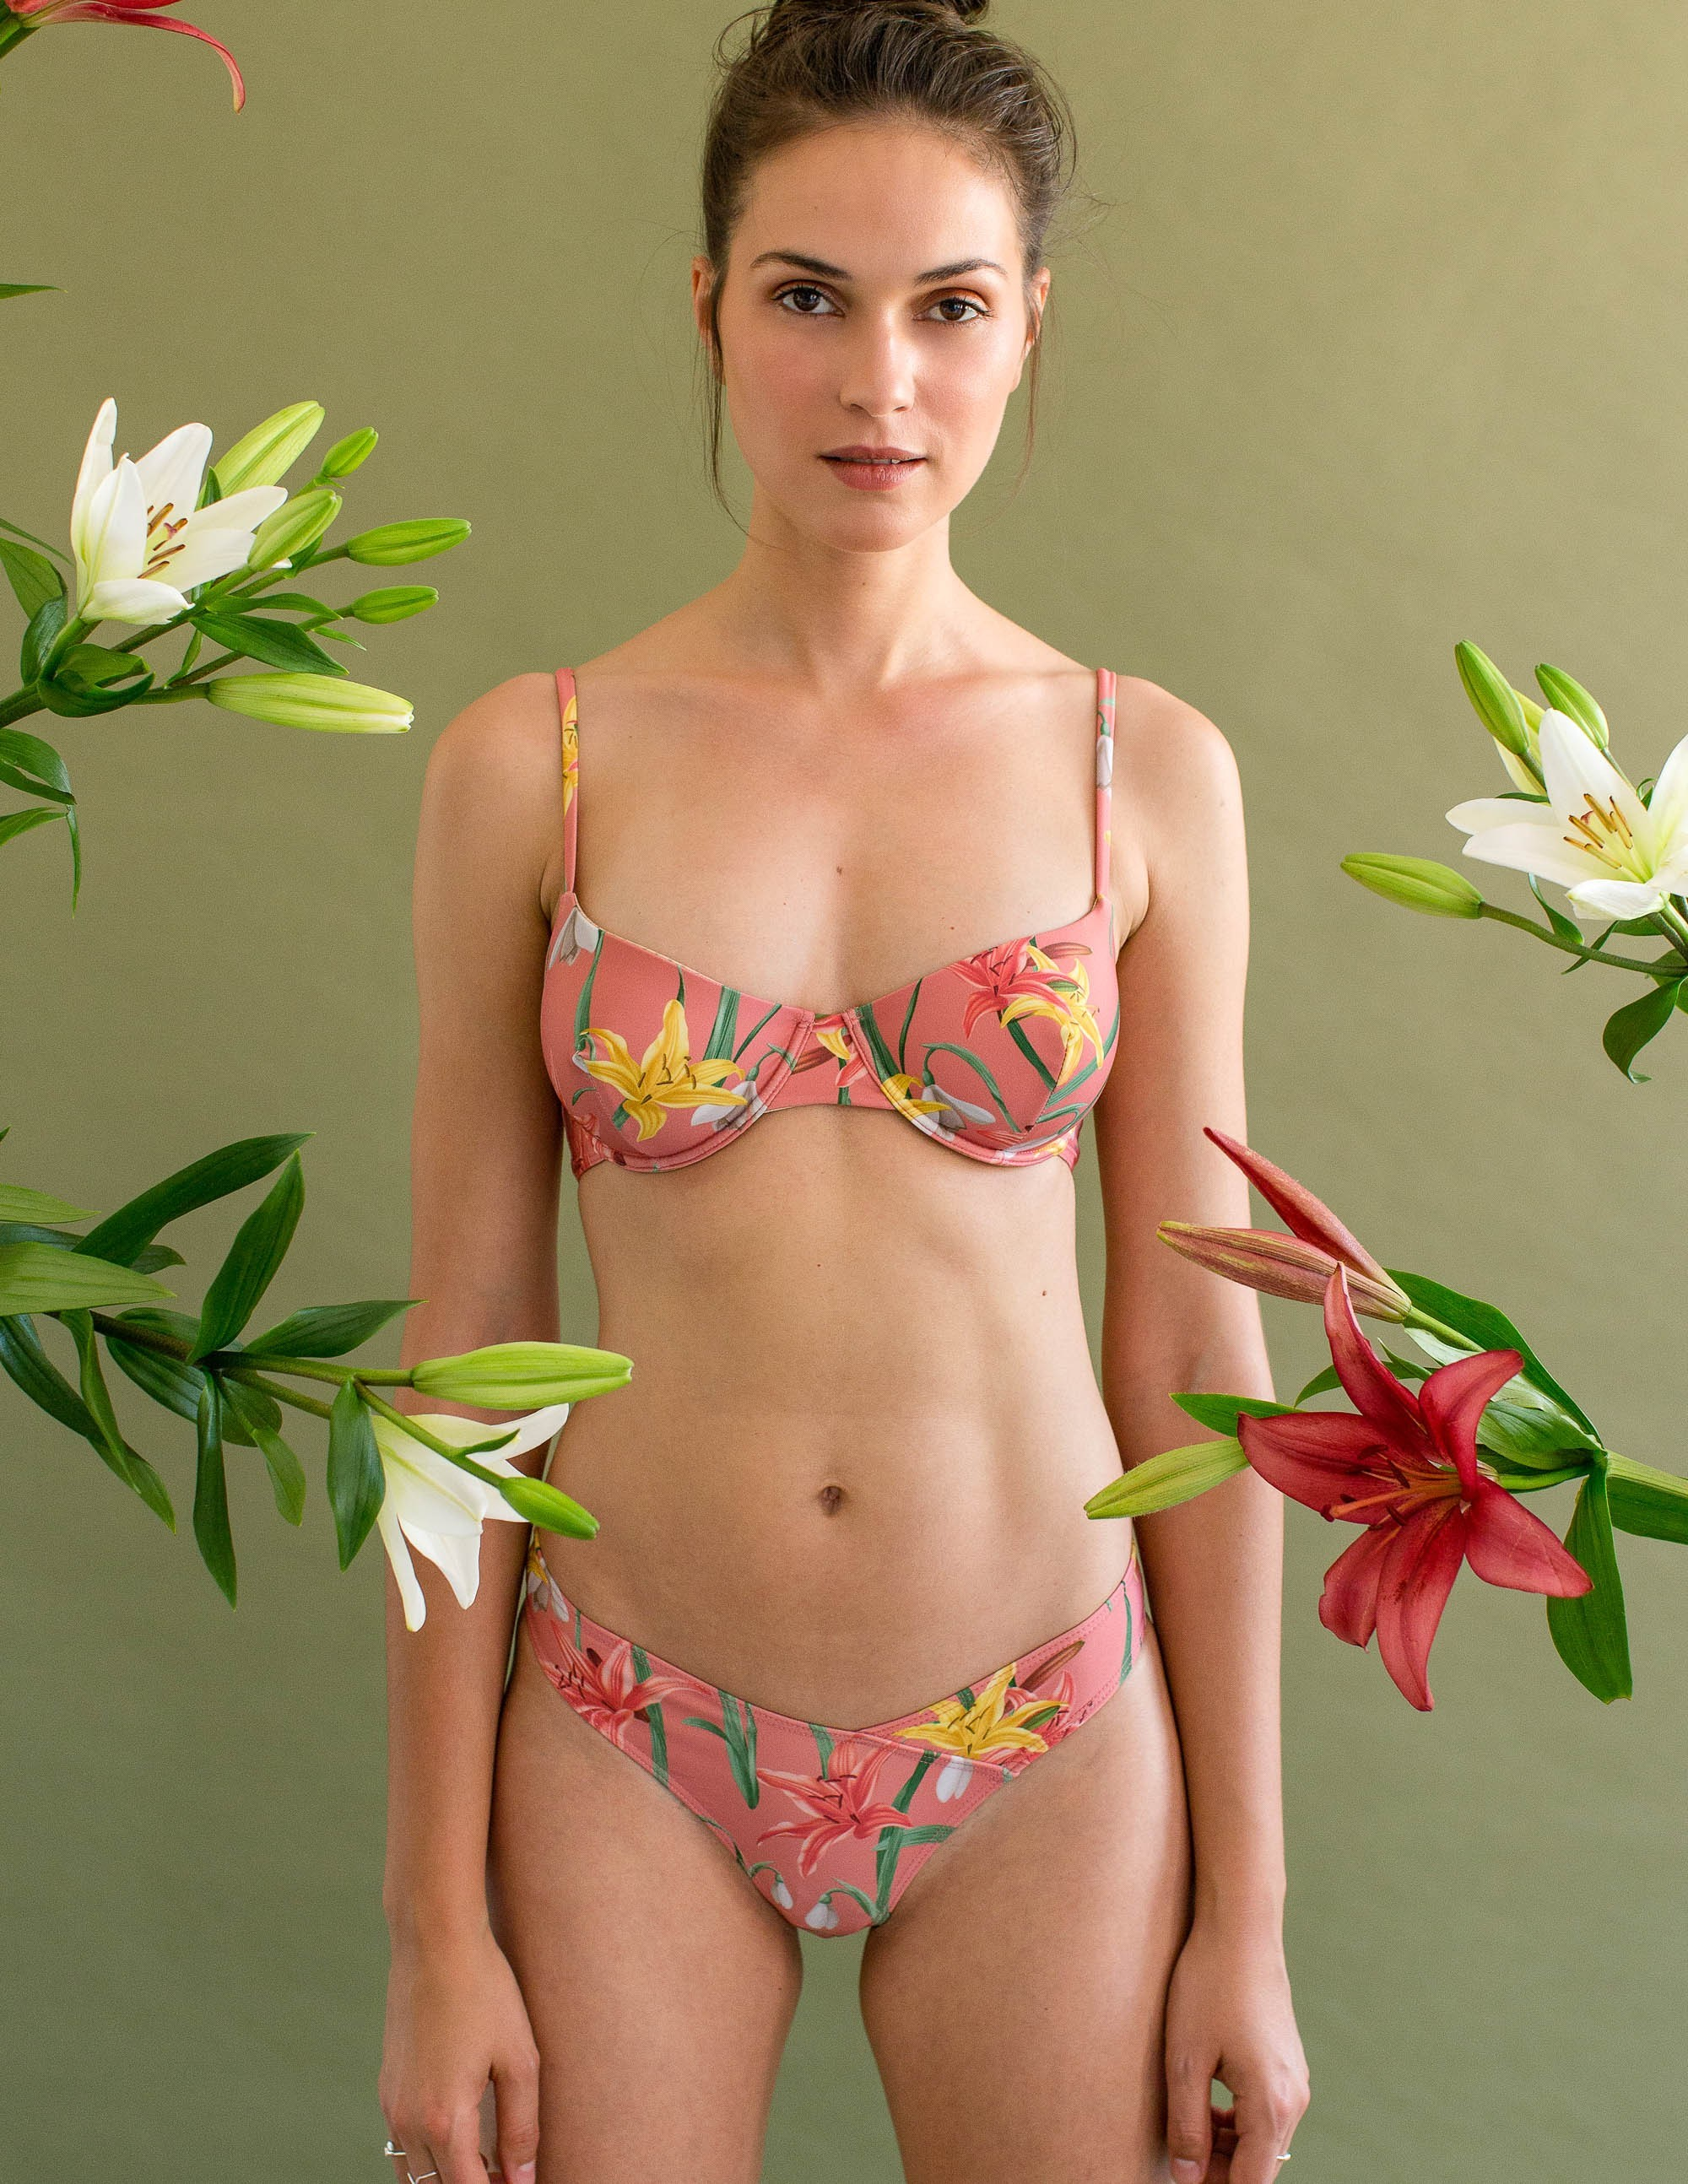 Macarella bikini in Bouquet RESET PRIORITY